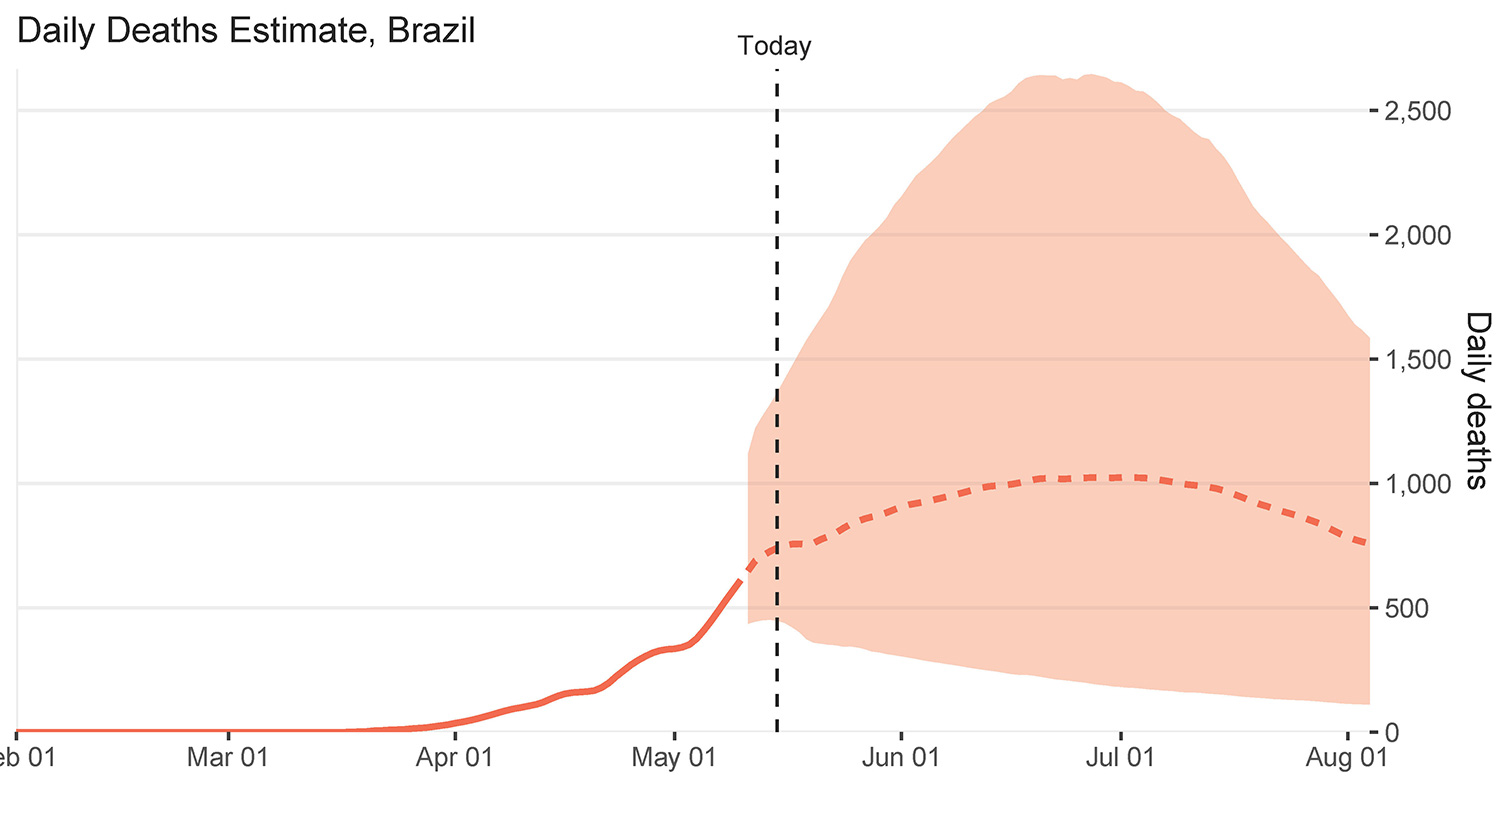 The graph shows daily deaths estimates for Brazil over time.